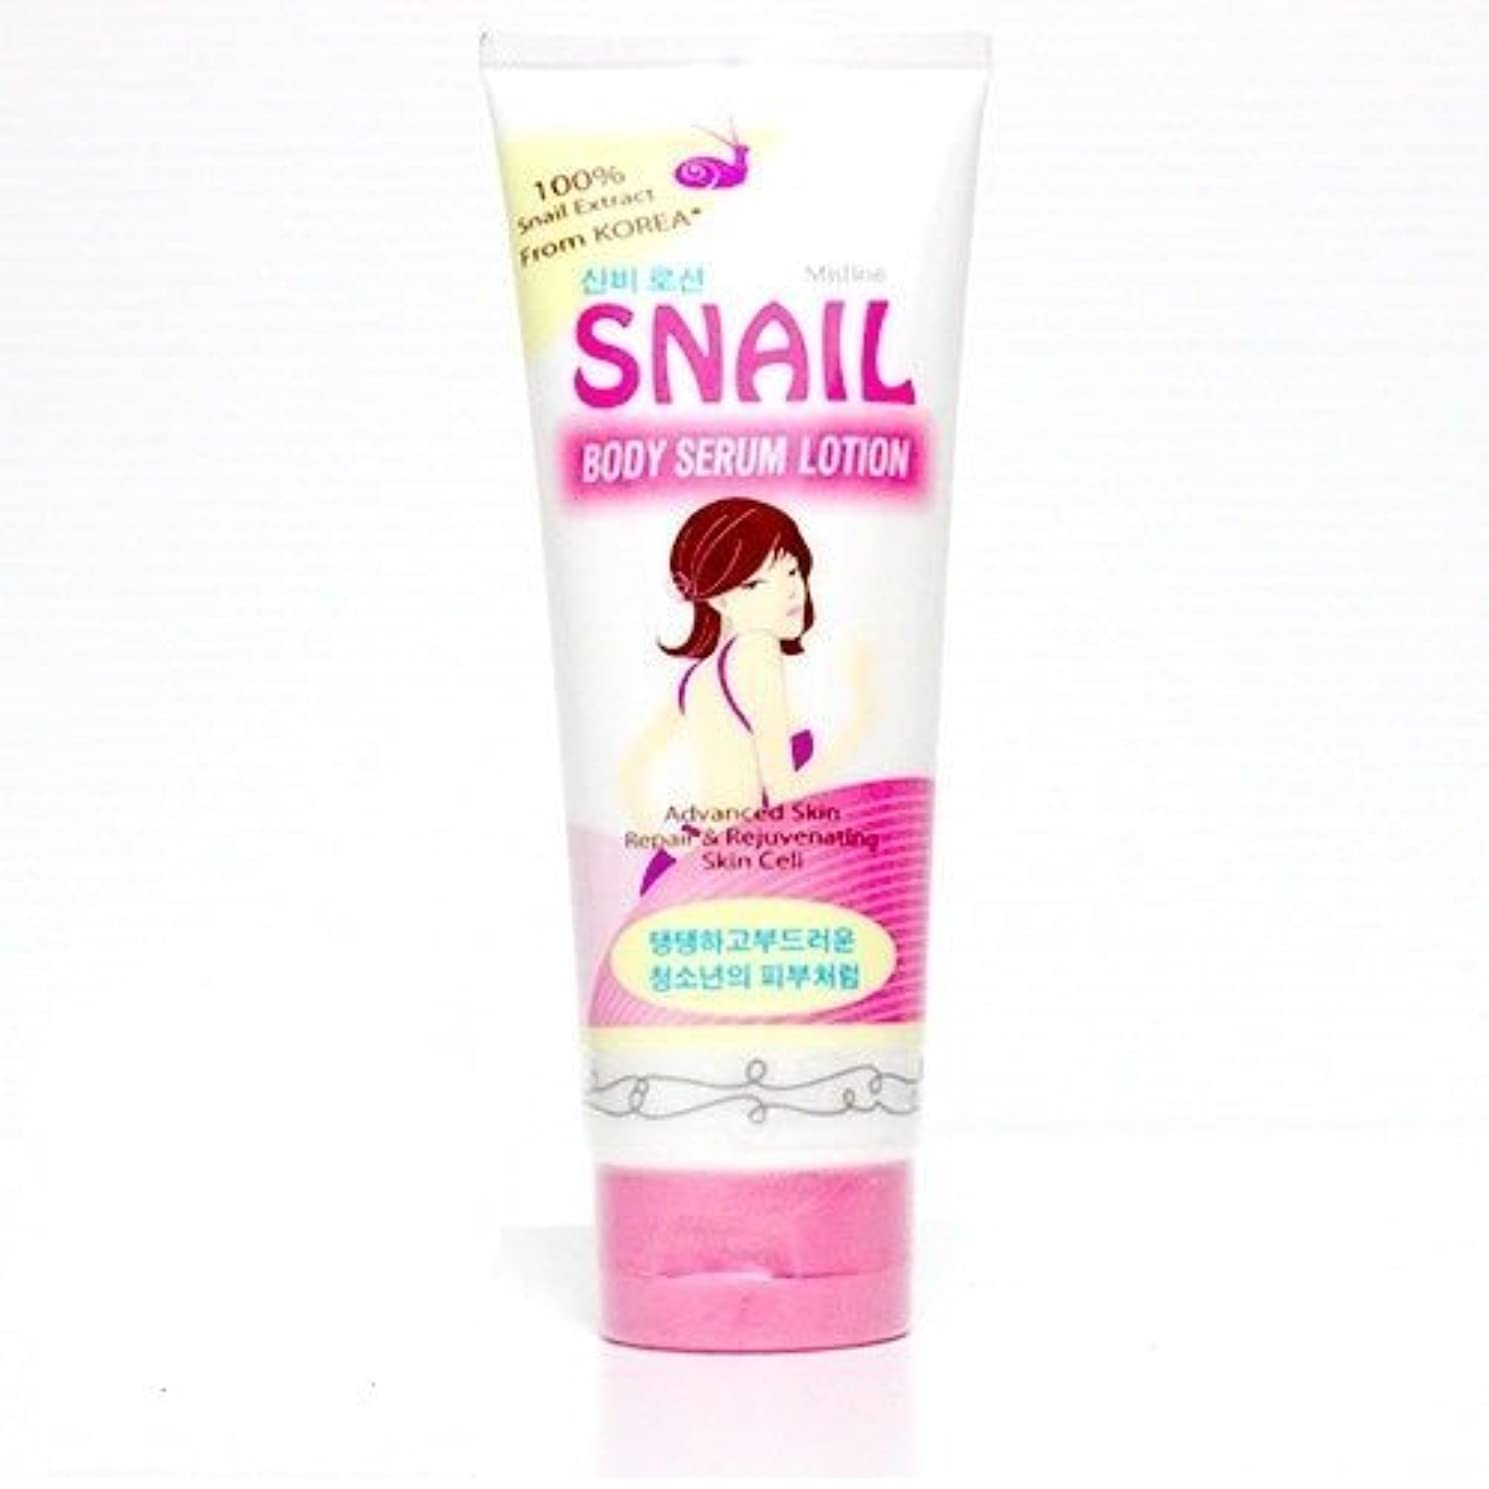 アラブ人会議請求書Mistine Snail Body Serum Lotion 2 packs by Mistine [並行輸入品]